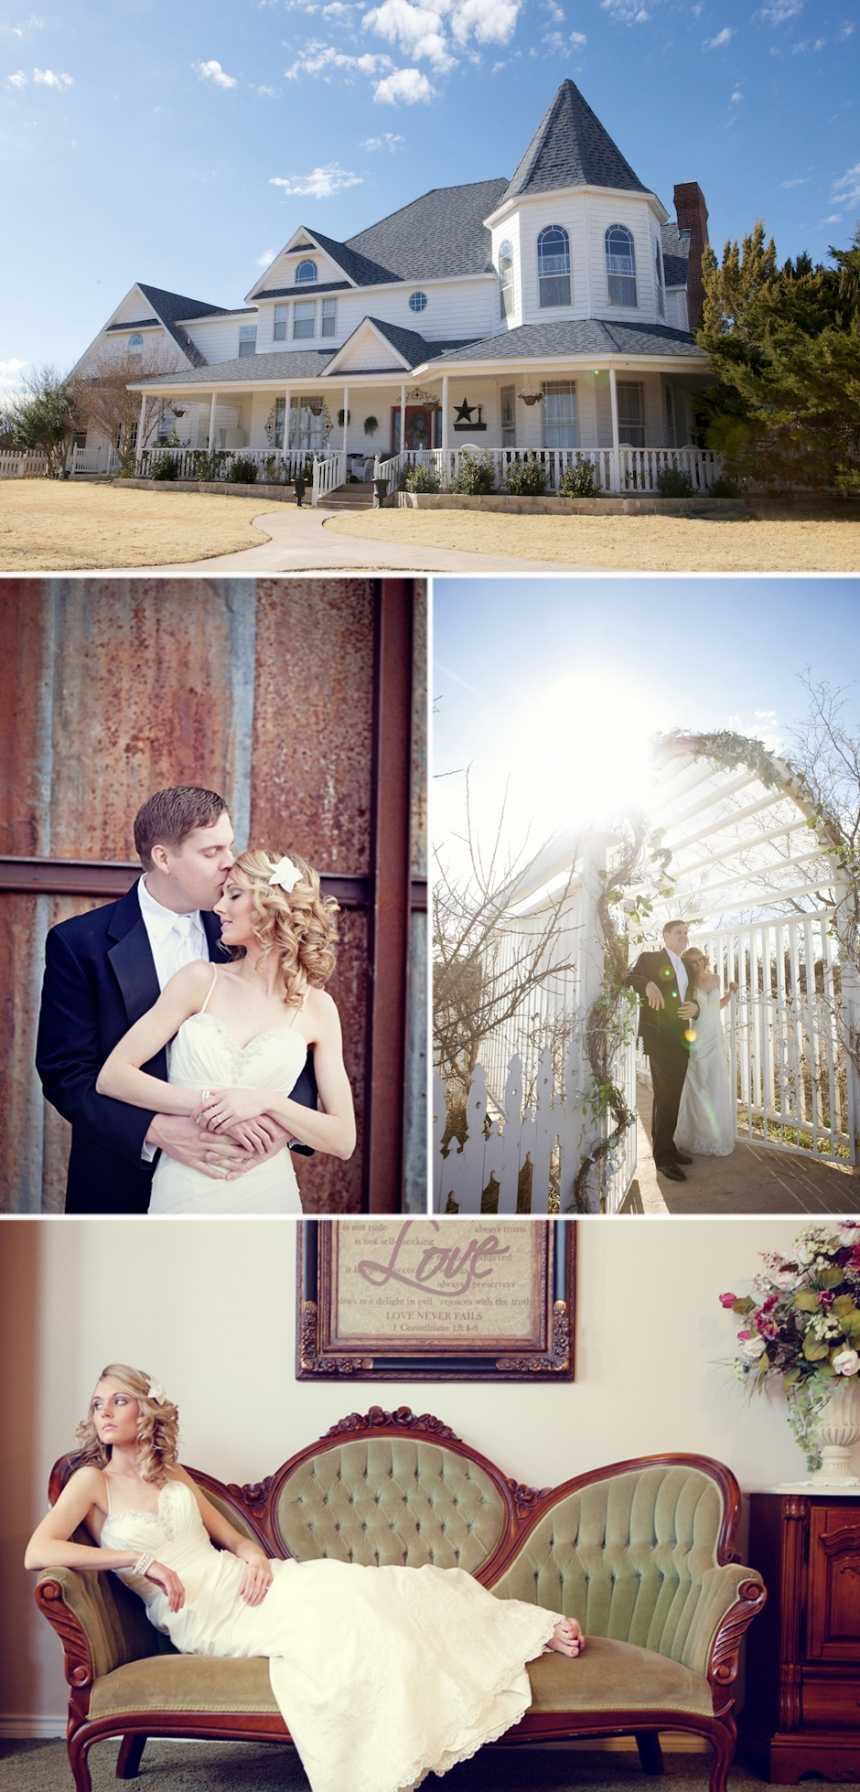 Abilene wedding photographer Jennifer Nieland of A Moment in Time Photography photographed Bryan Sickles and Julie Swart, now Julie Sickles, wedding at Lytle Cove Cottage outside of Abilene, Texas.